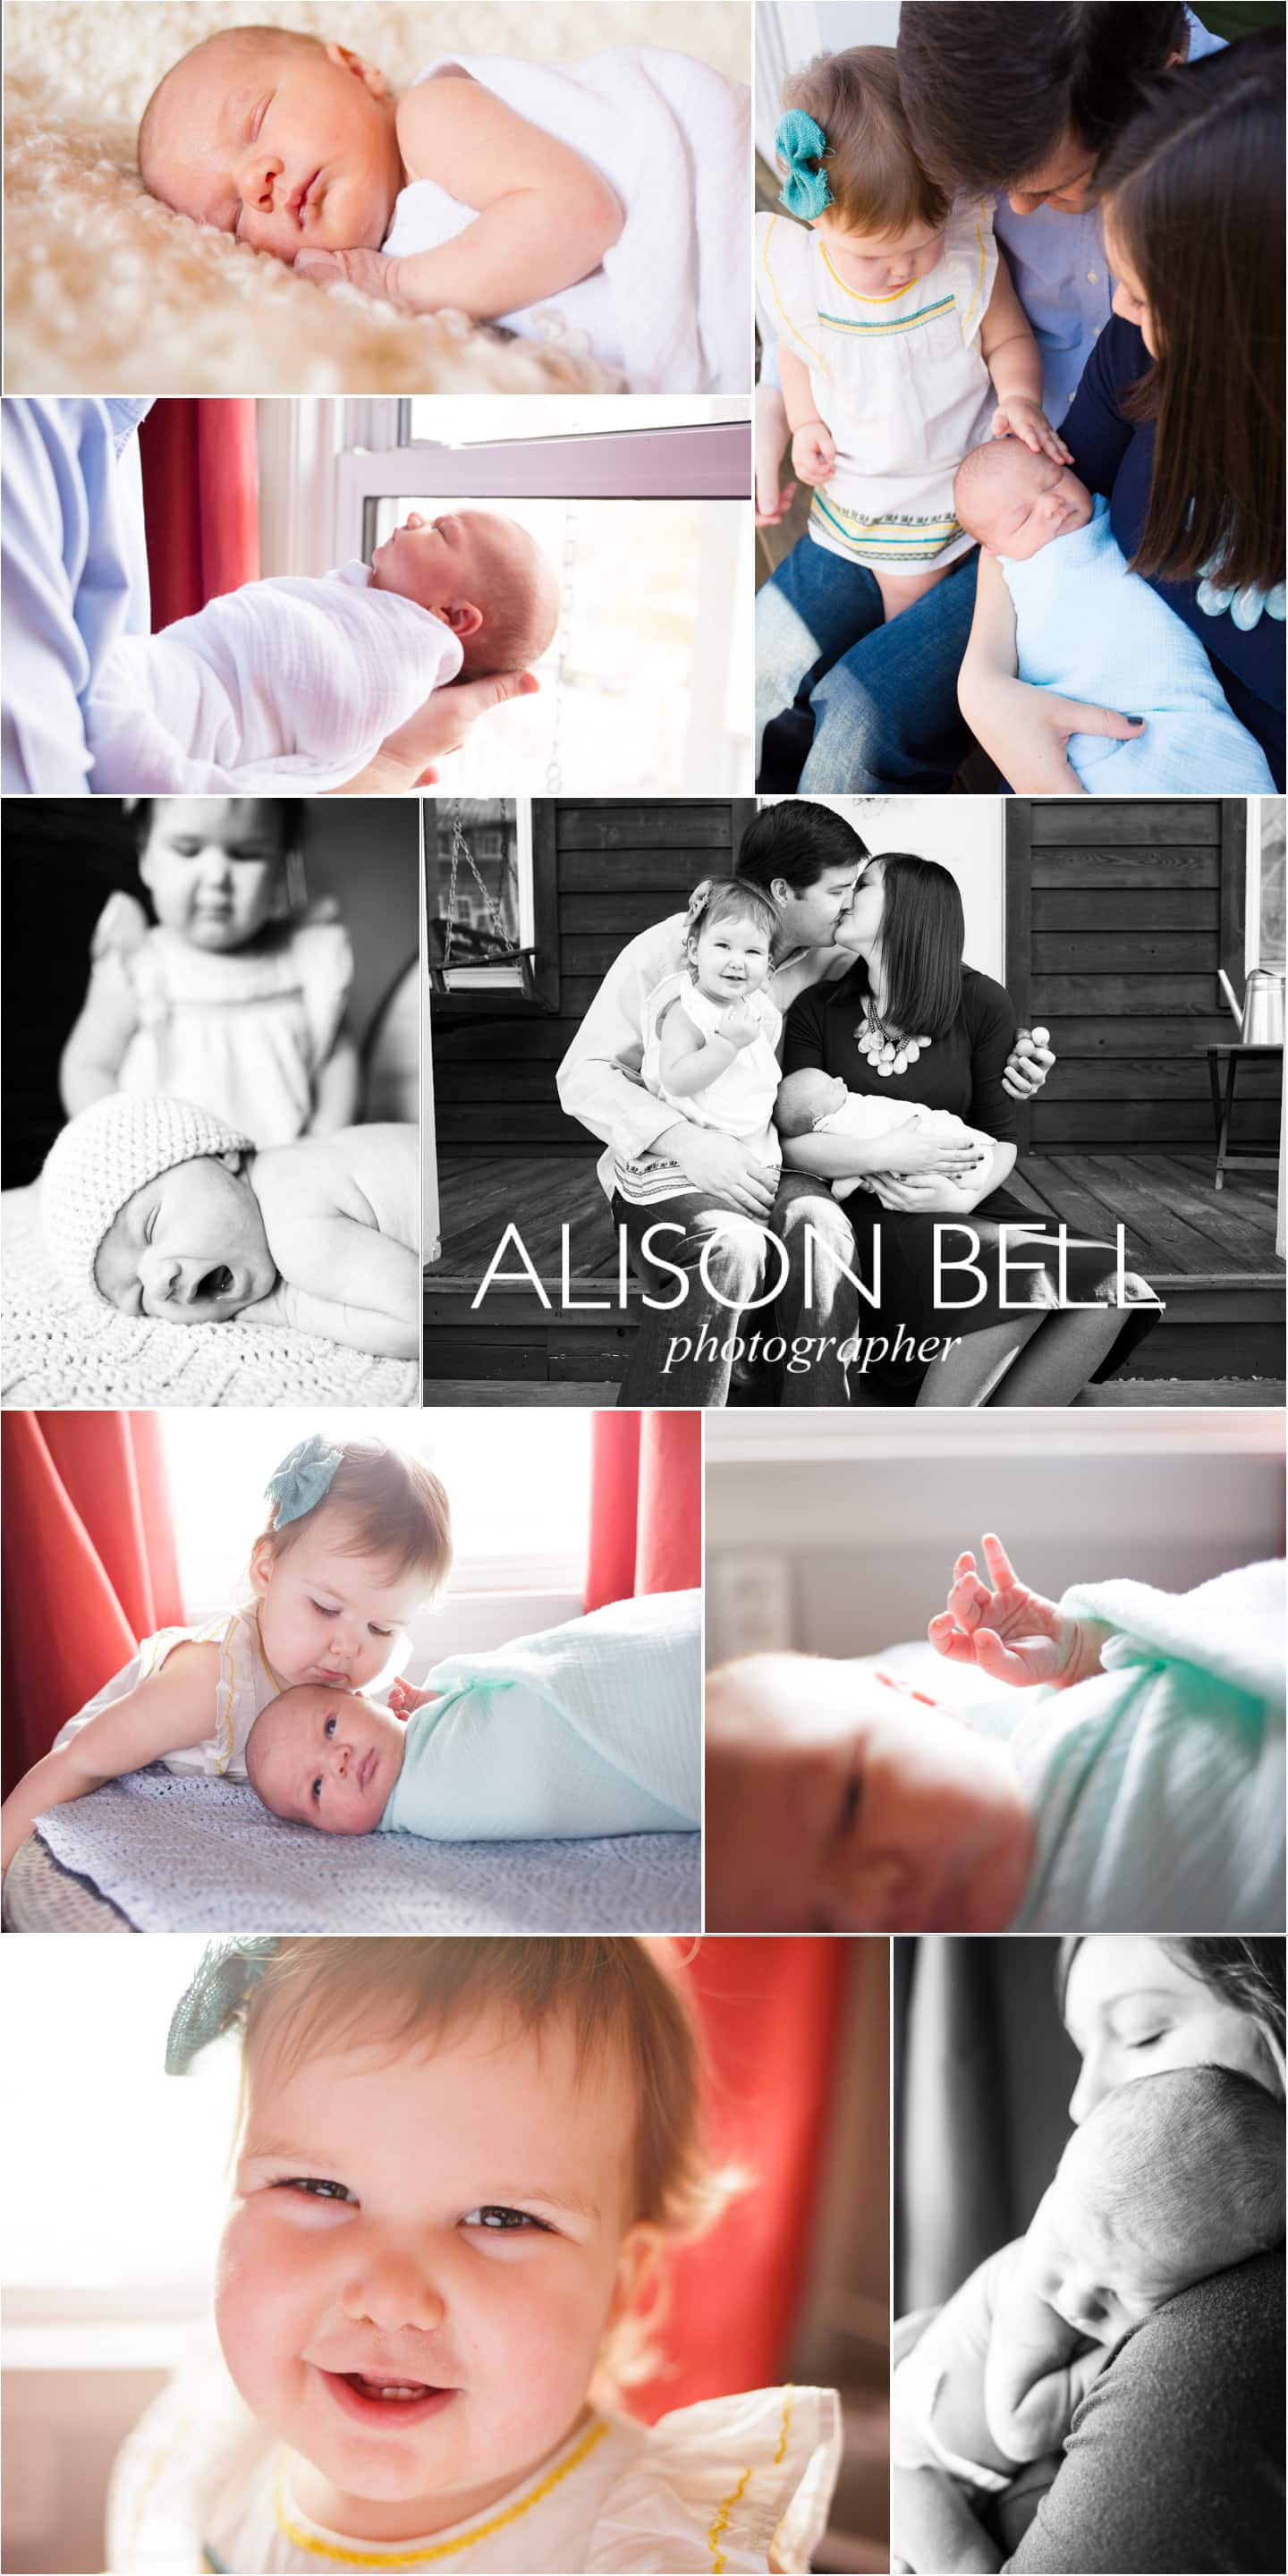 Alison Bell Photographer, in home new born session, helena, alabama, family, photogrpahy